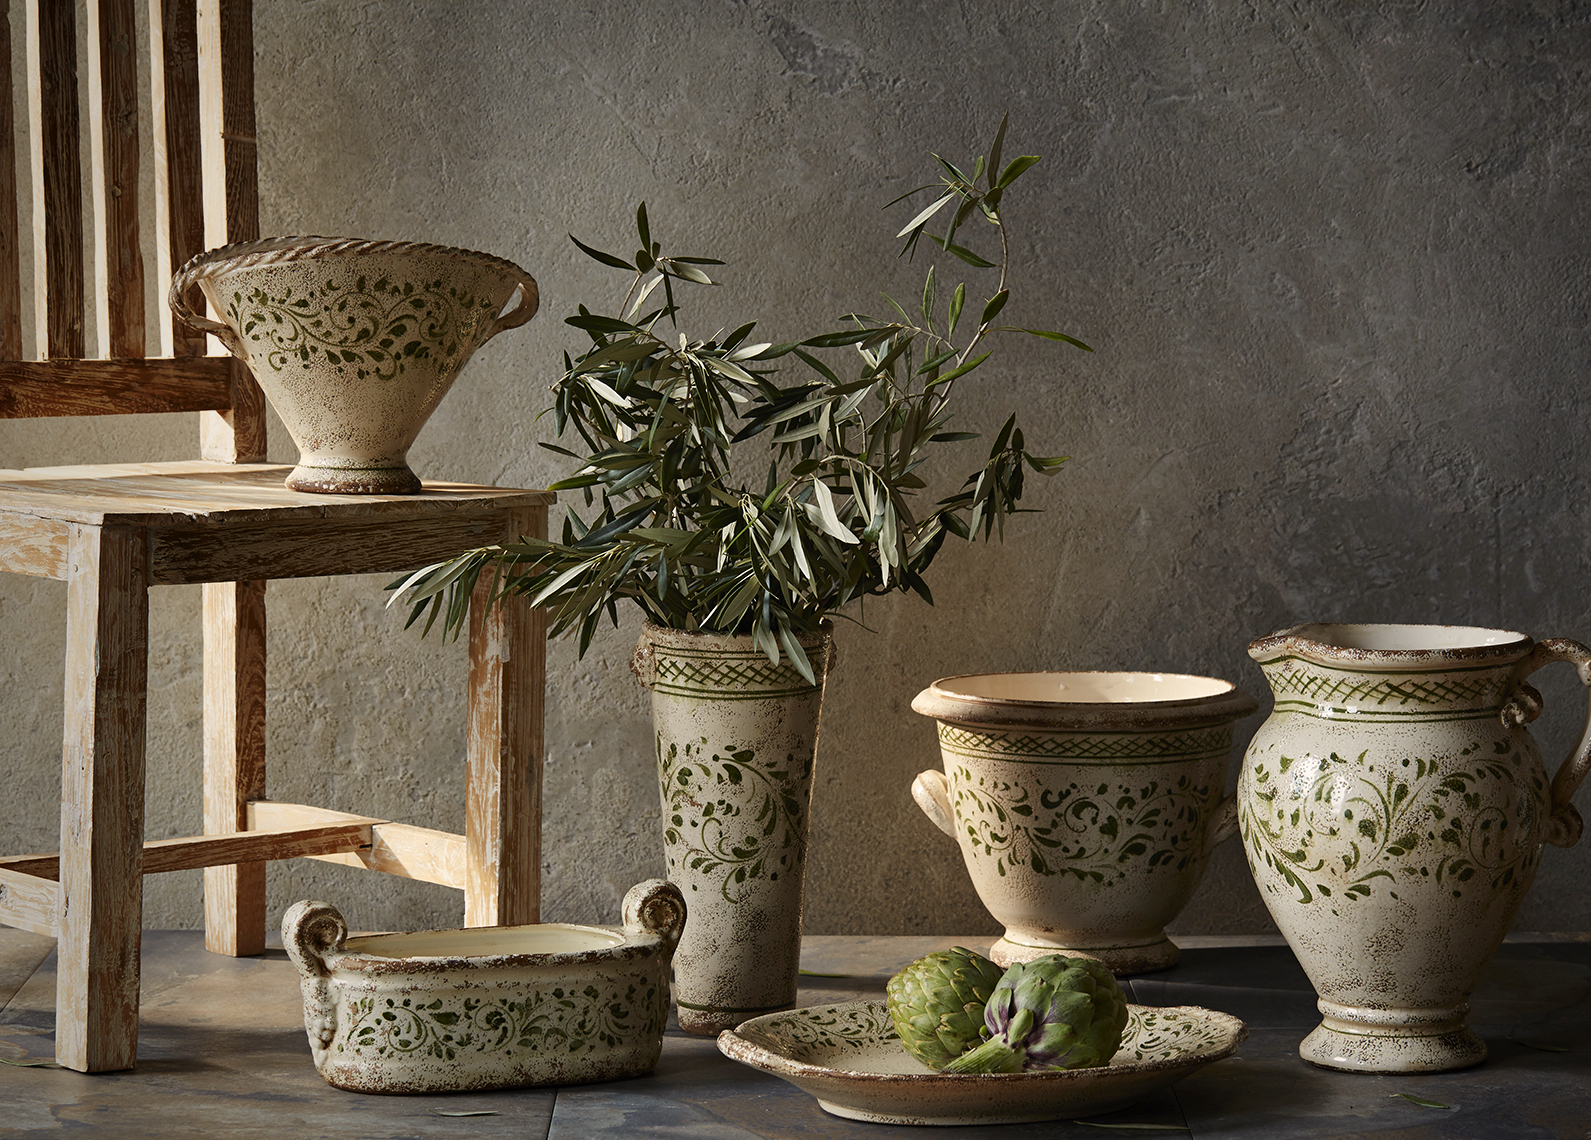 Catalog photograph showing handmade pottery and vases